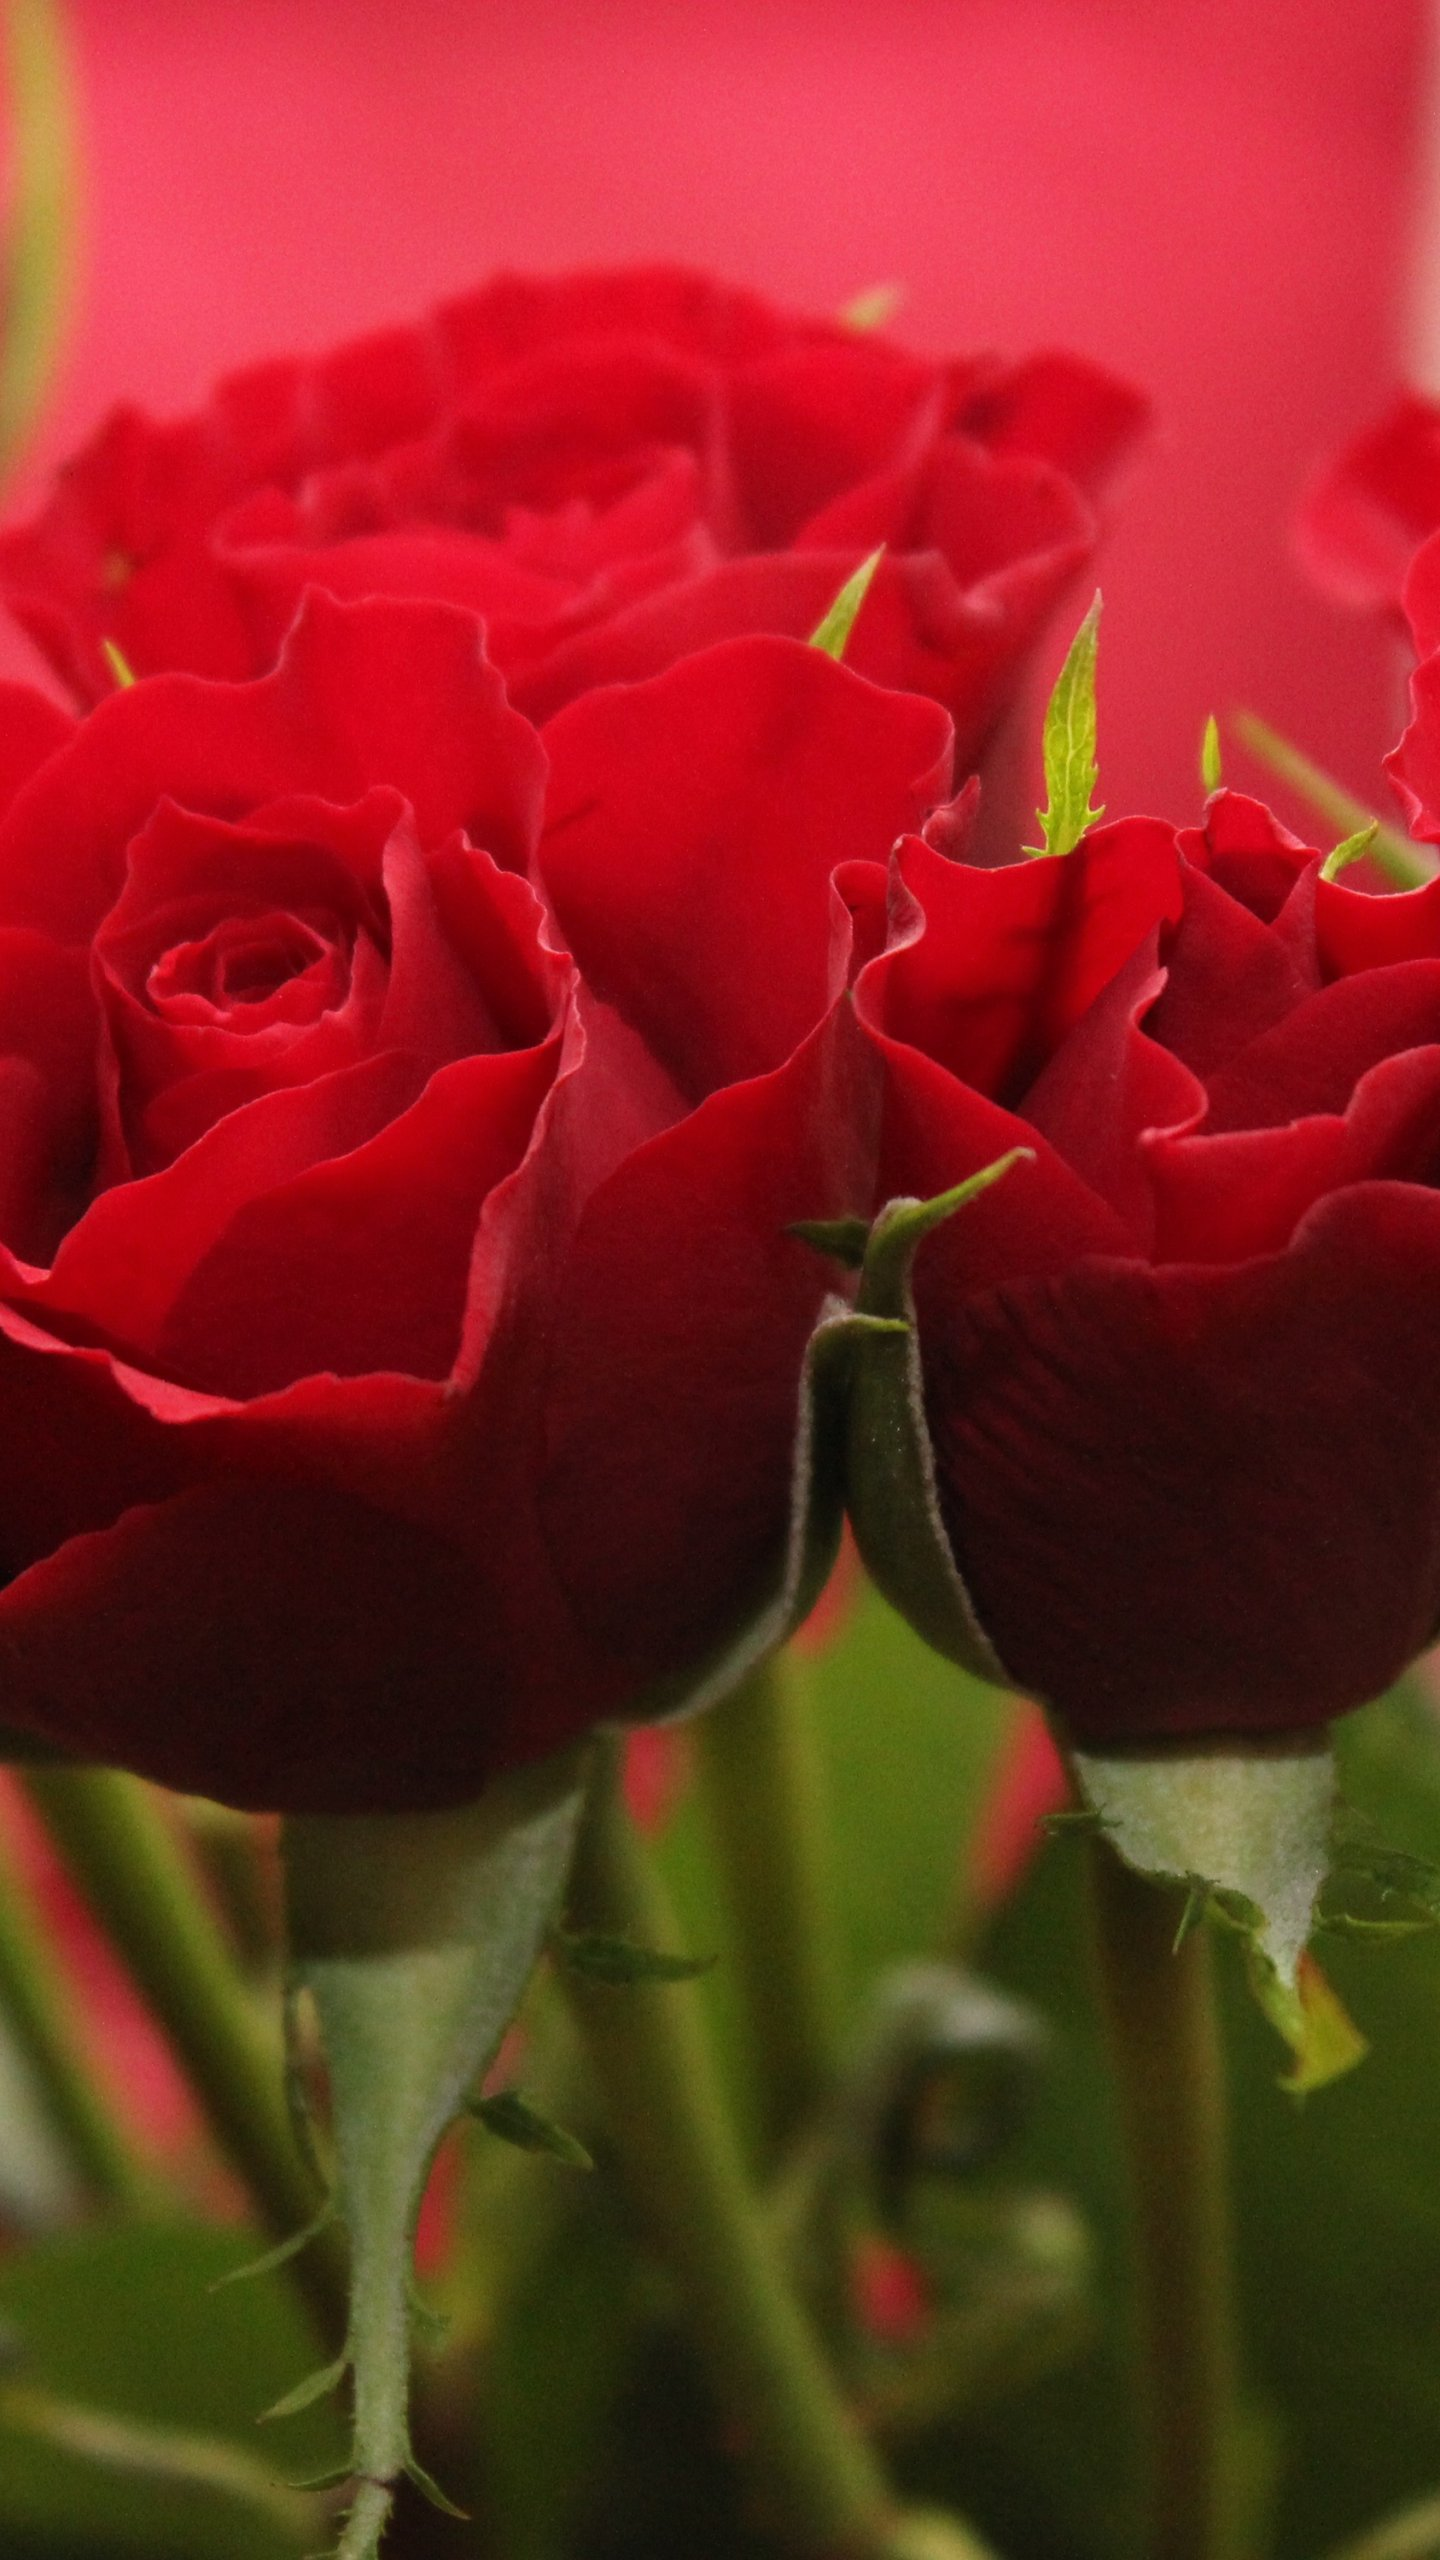 Red Roses Wallpaper Iphone Android Desktop Backgrounds